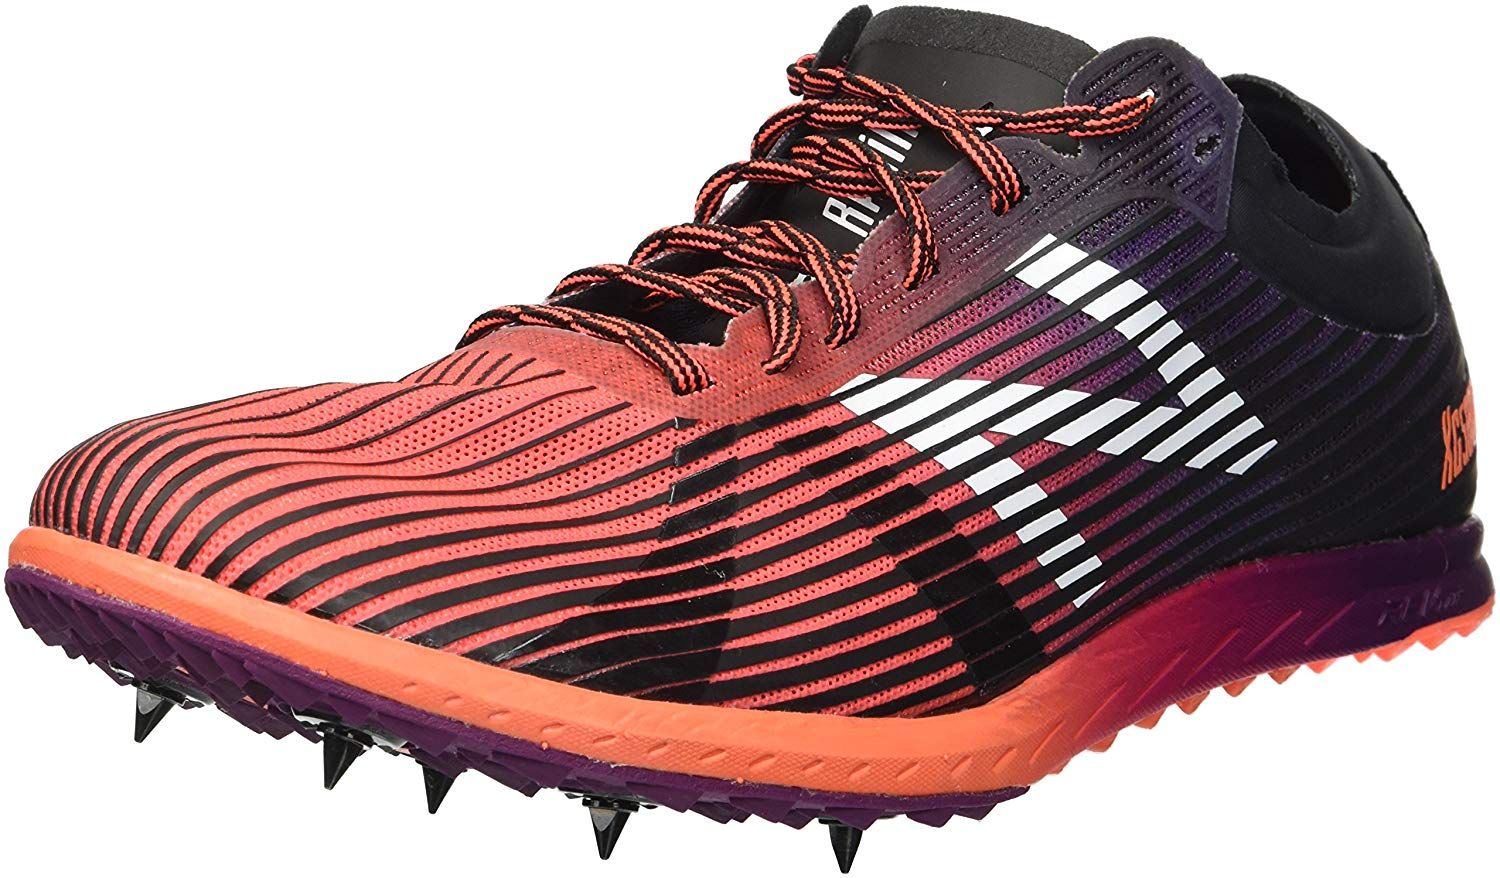 low priced 96bfe 1ffc4 Details about New Balance Women's 5k V4 Cross Country Running Shoe